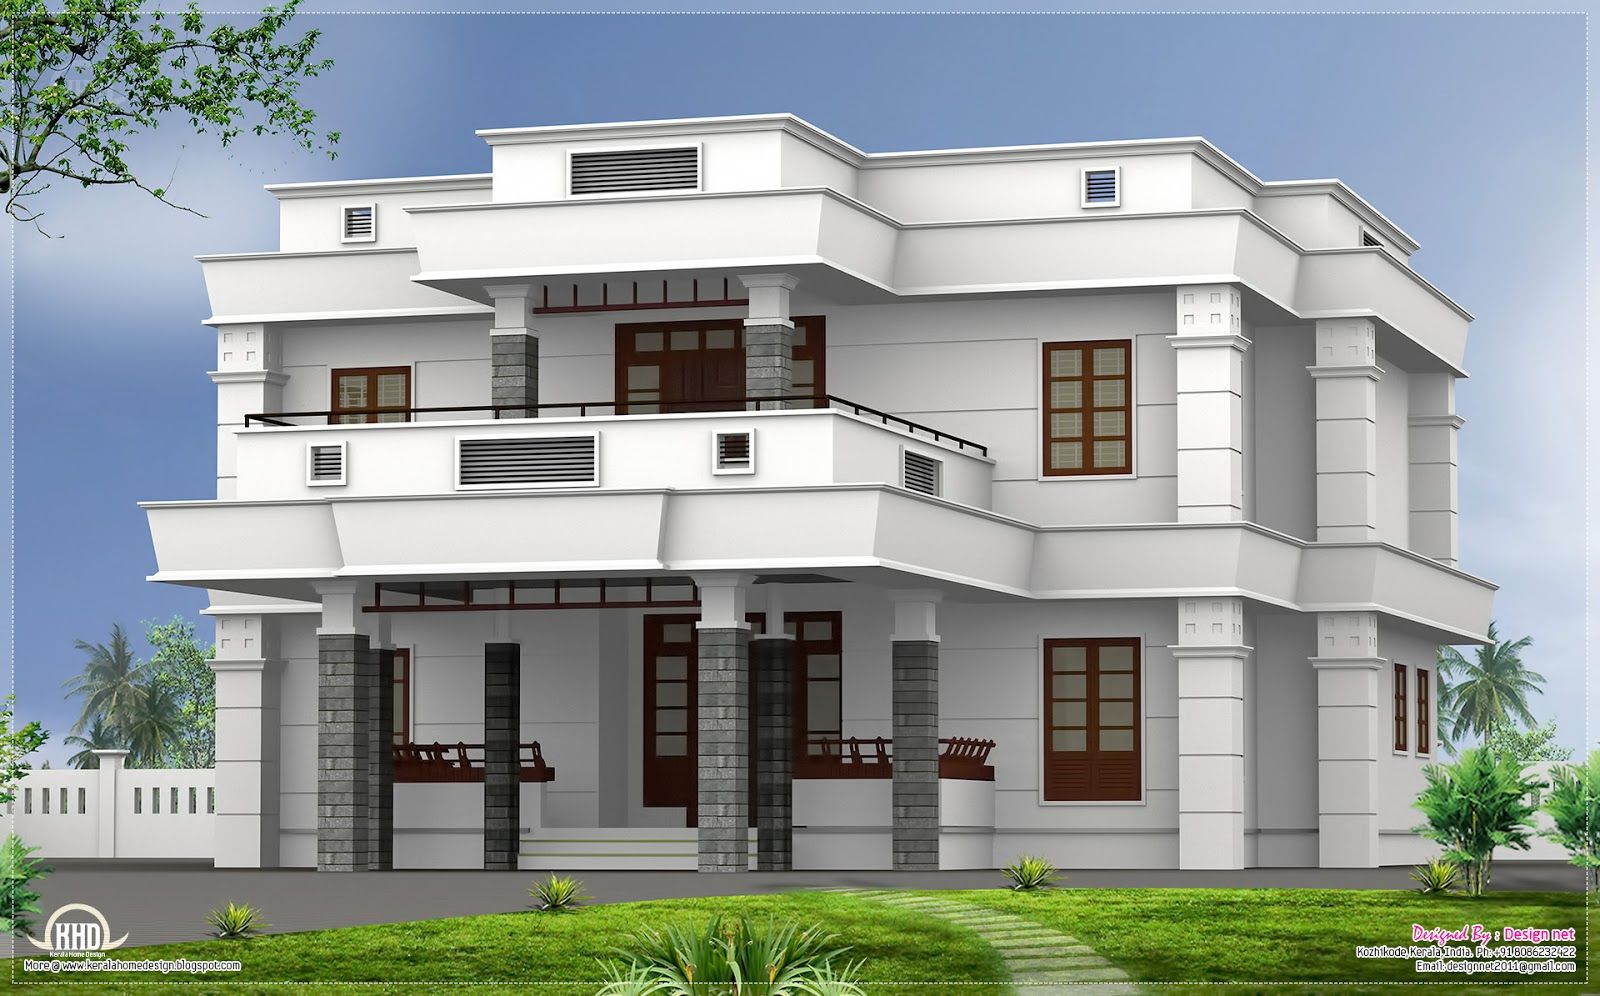 Flat Roof Homes Designs Bhk Modern Flat Roof House Design Kerala Home Design And Floor